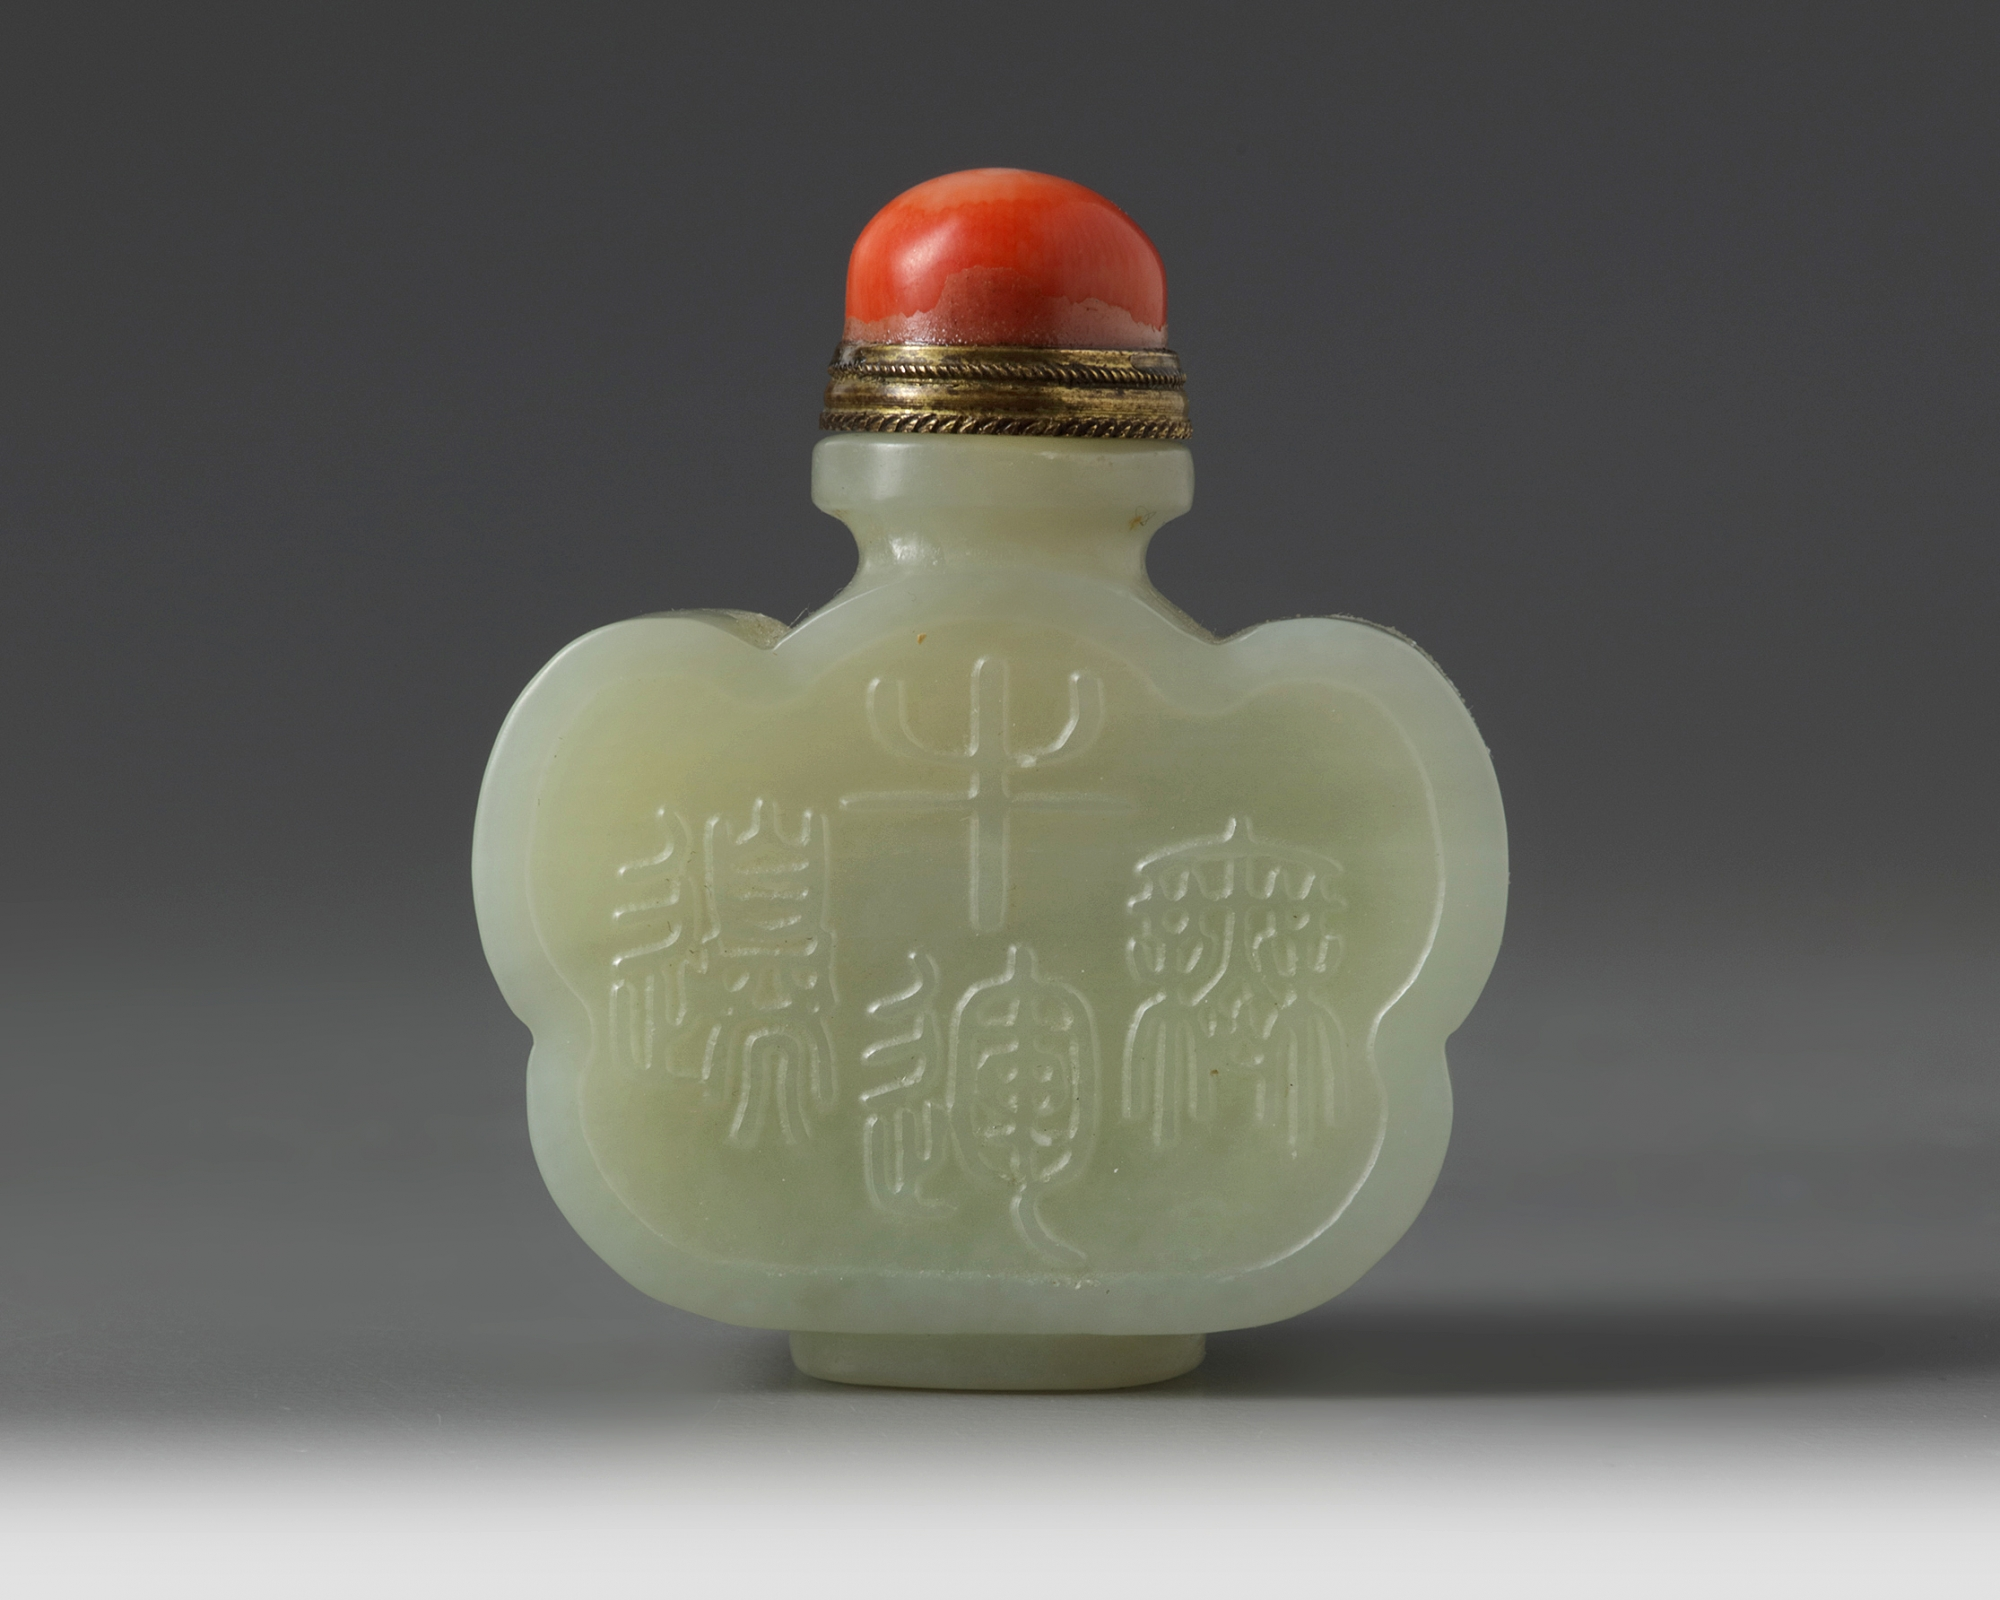 Lot 60 - A Chinese pale celadon jade snuff bottle